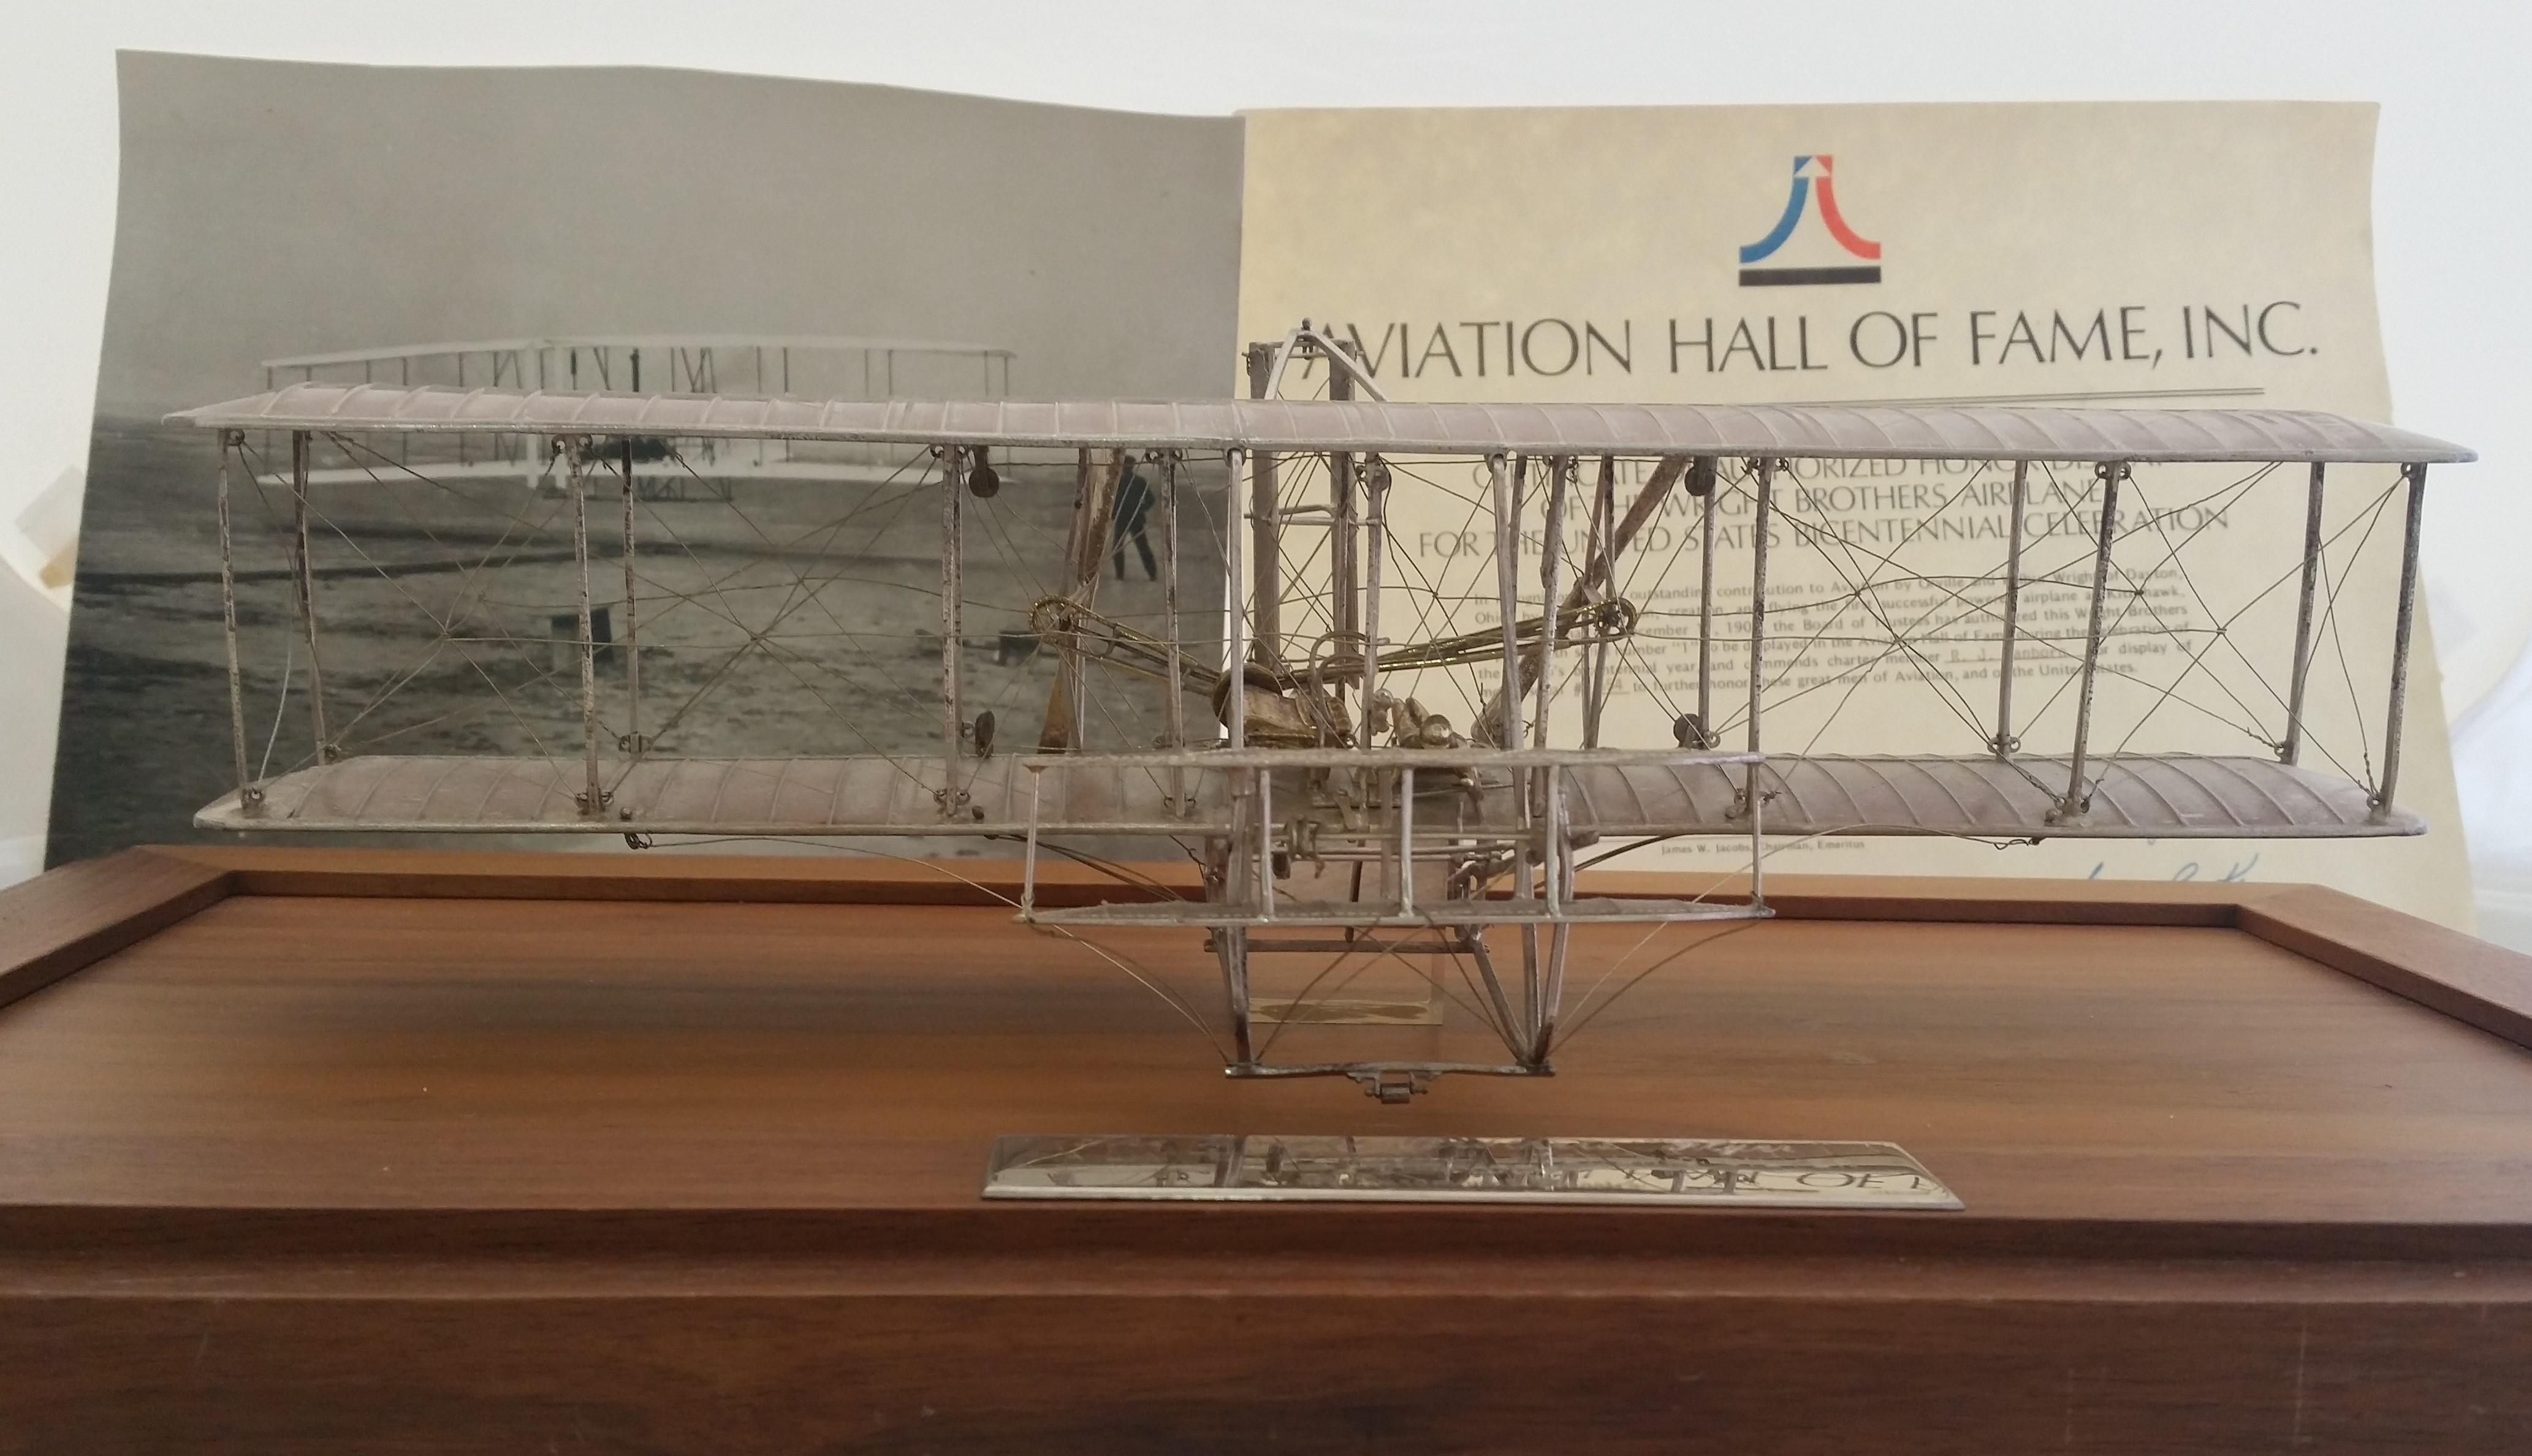 Paramount Classics - 'Wright Brothers Flyer' - Scale Sterling model